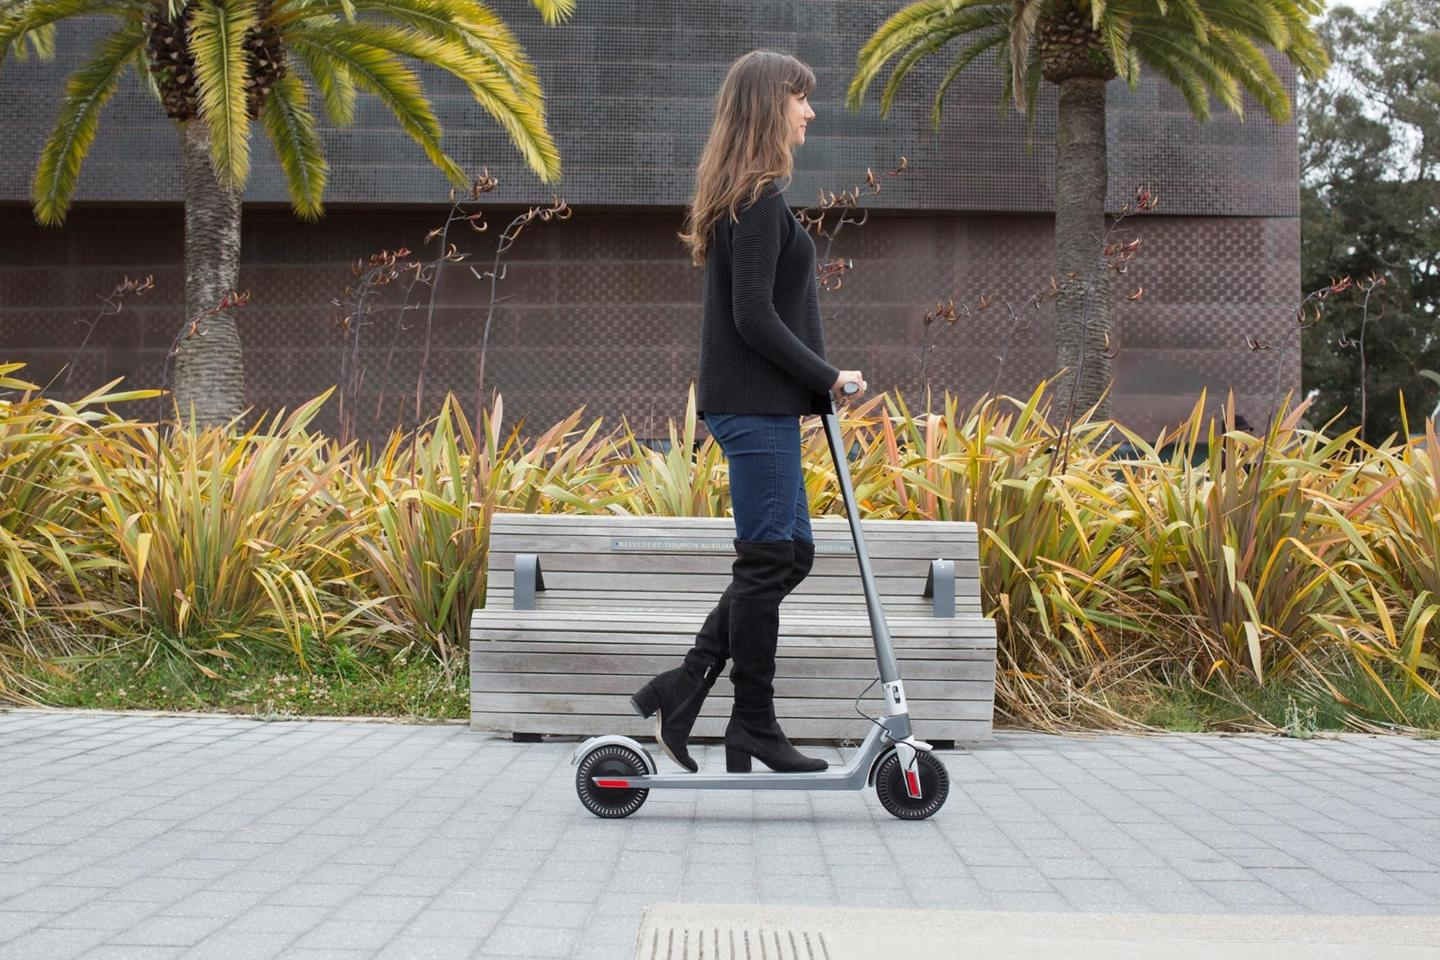 The Unagi Scooter comes with either a 250 W front wheel motor or a dual motor setup with 200 W at the front and 250 W to the rear